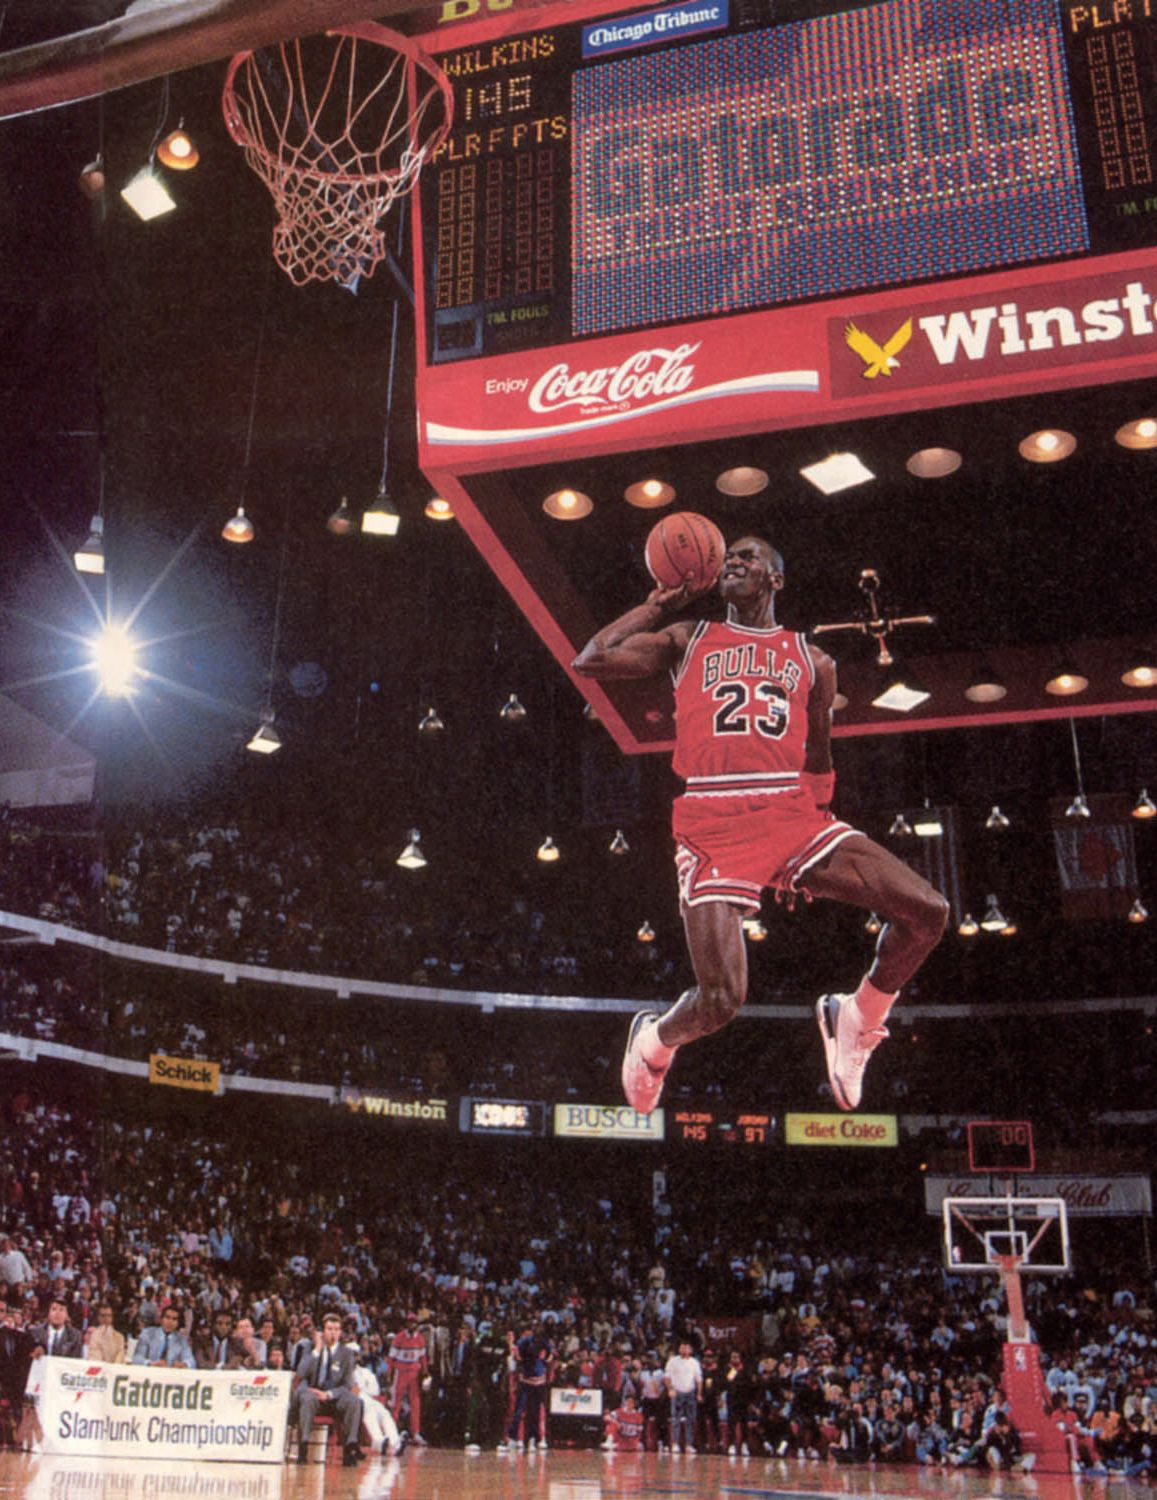 Mate De Jordan Desde El Tiro Libre Mj Air Jordan Iii 1988 Dunk Contest Free Throw Line 2 Mj Pinterest